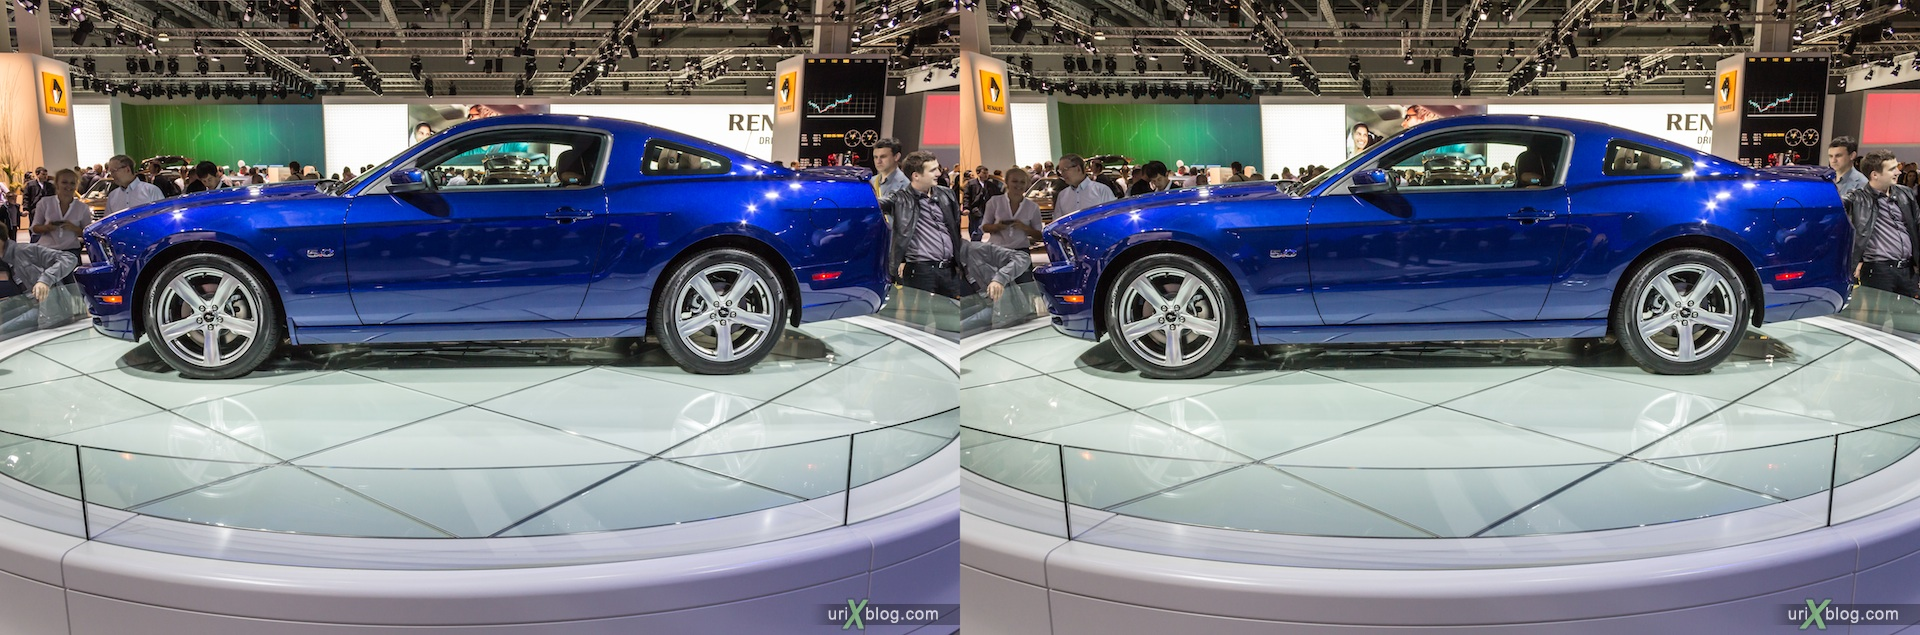 2012, Mustang, Moscow International Automobile Salon, auto show, 3D, stereo pair, cross-eyed, crossview